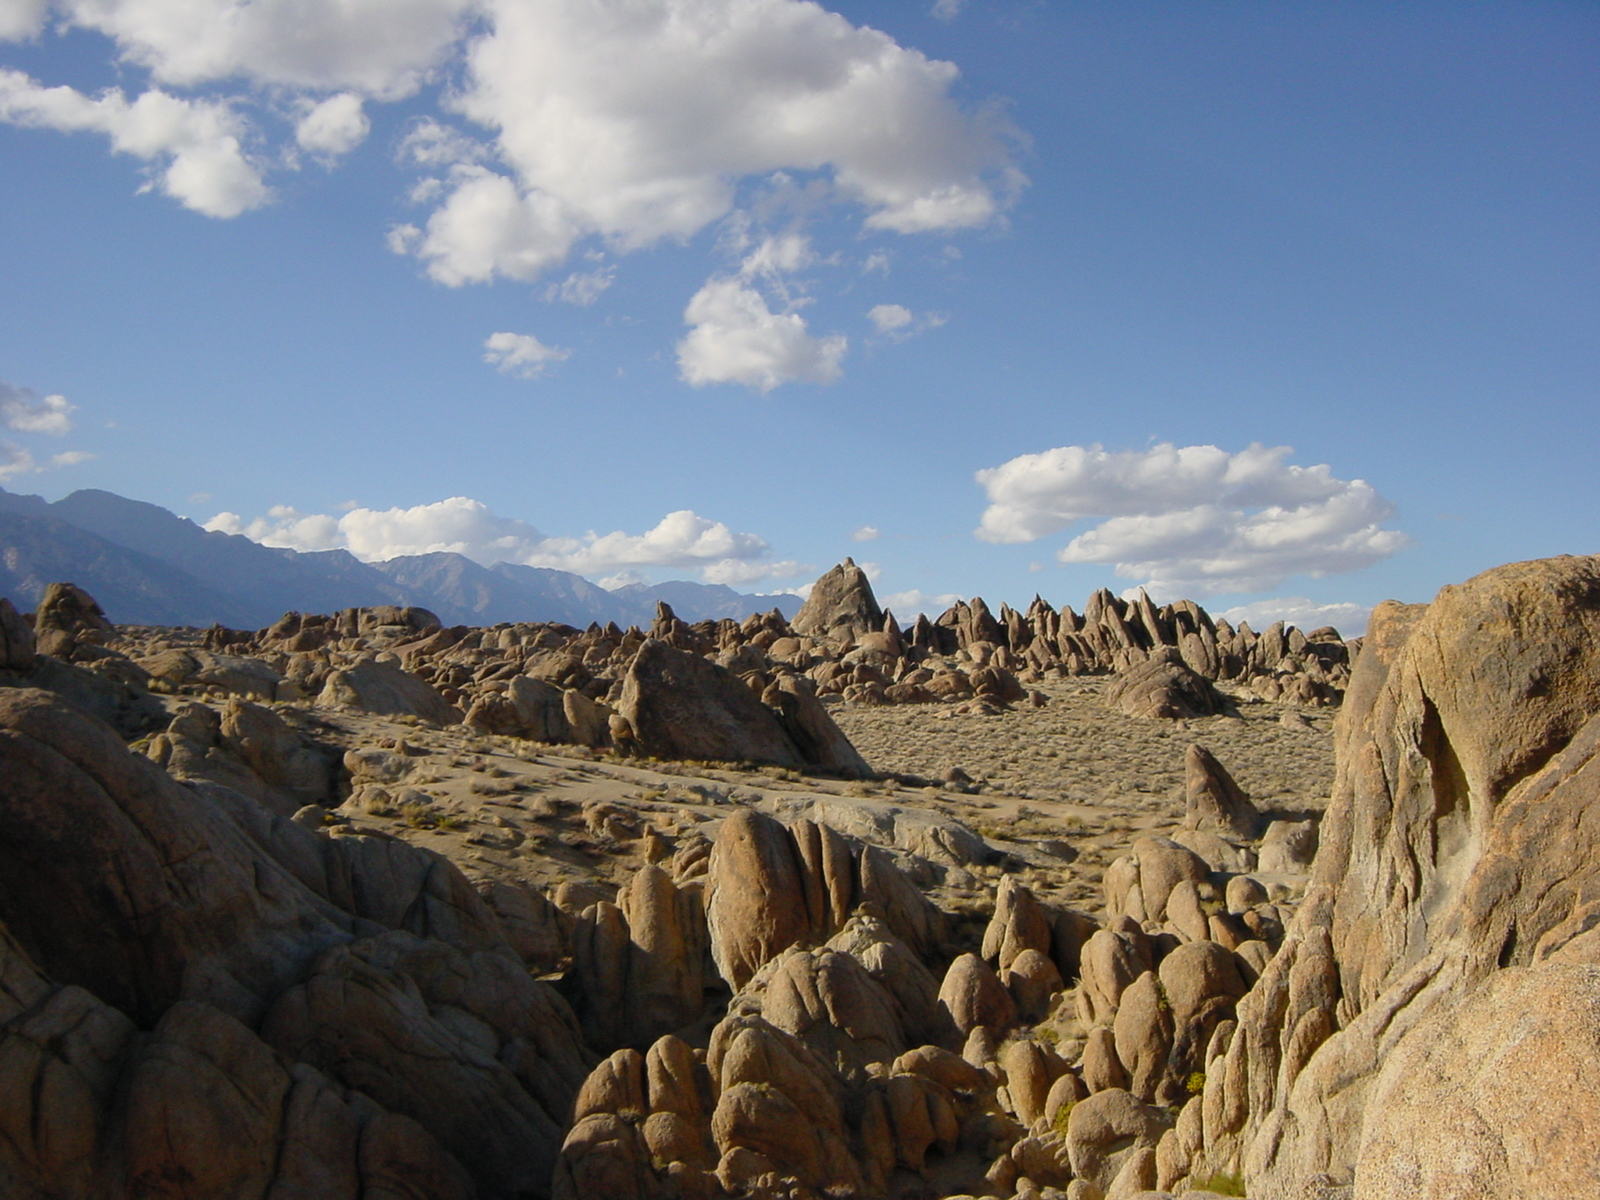 The Alabama Hills - Does the Lone Pine Devil truly live here?